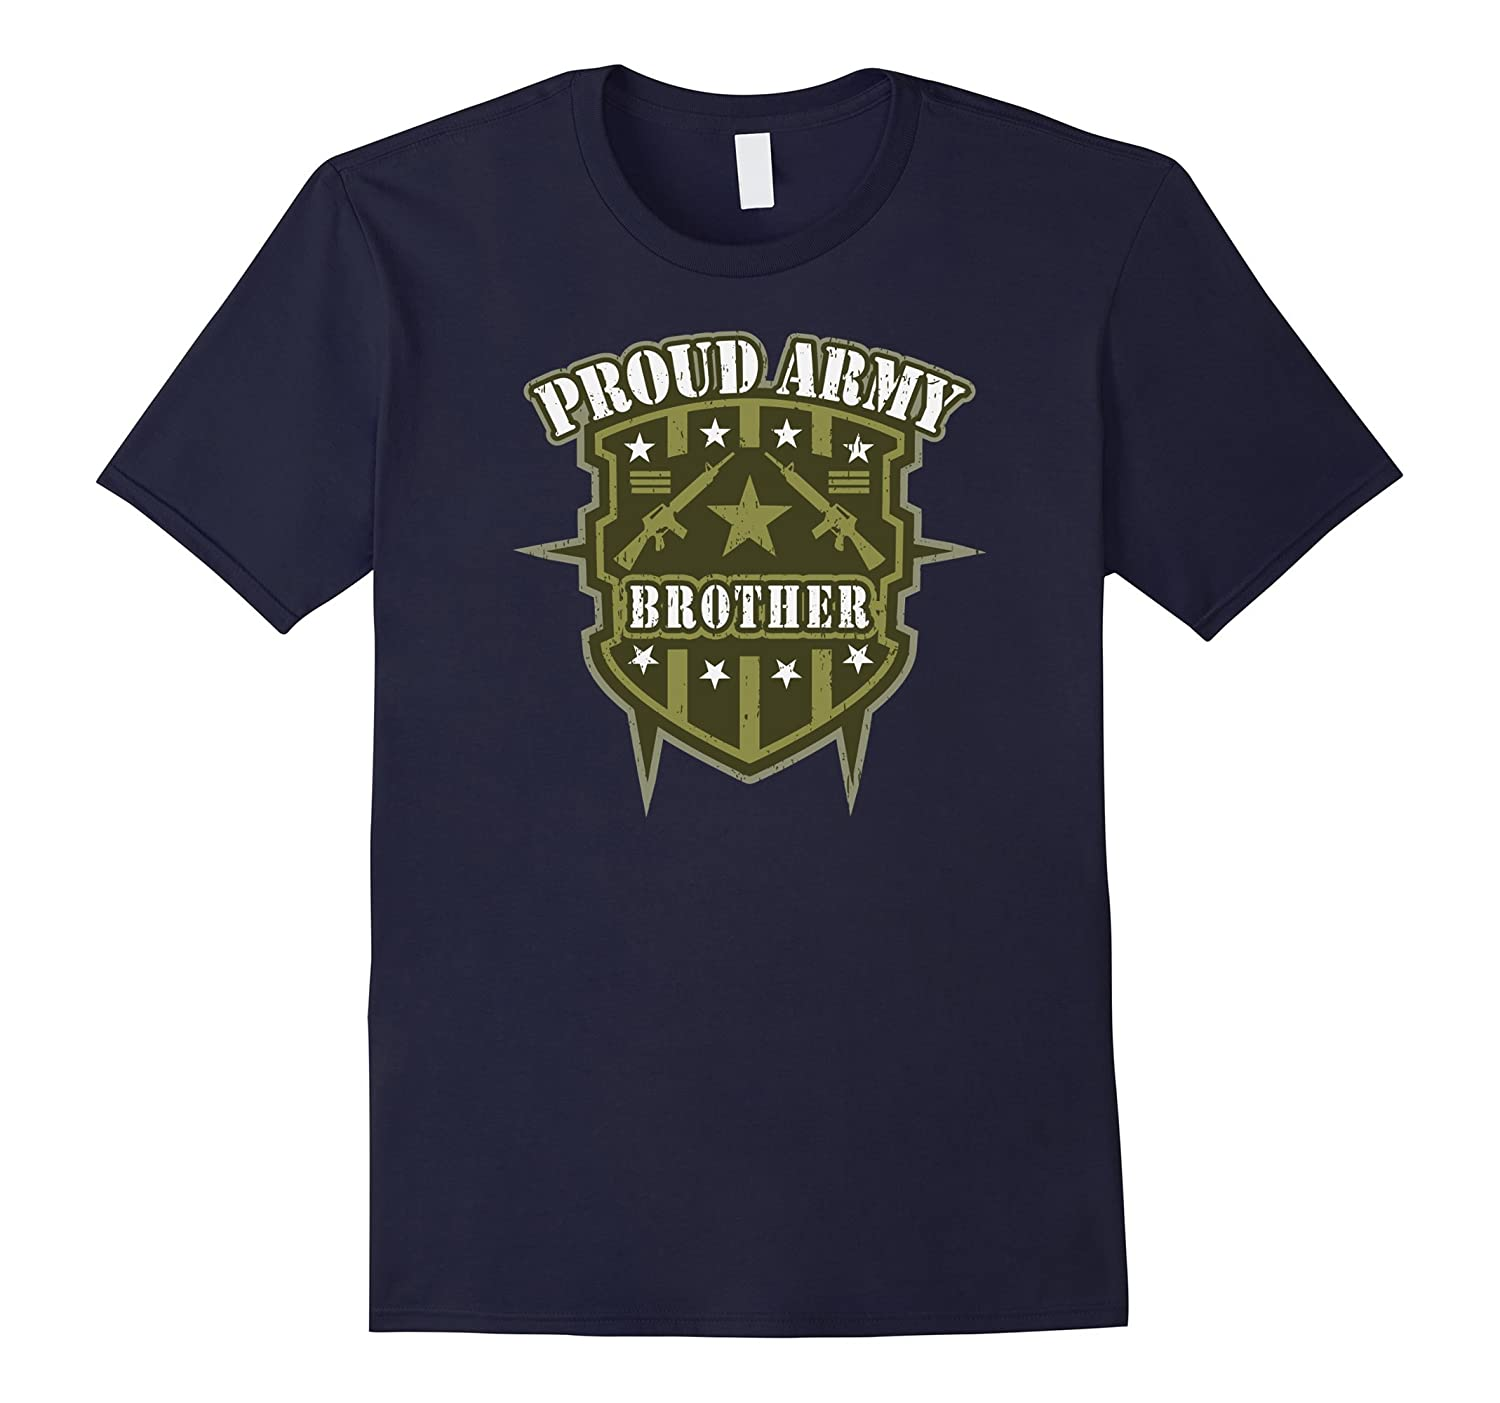 Proud Army Brother Military T-shirt-Vaci